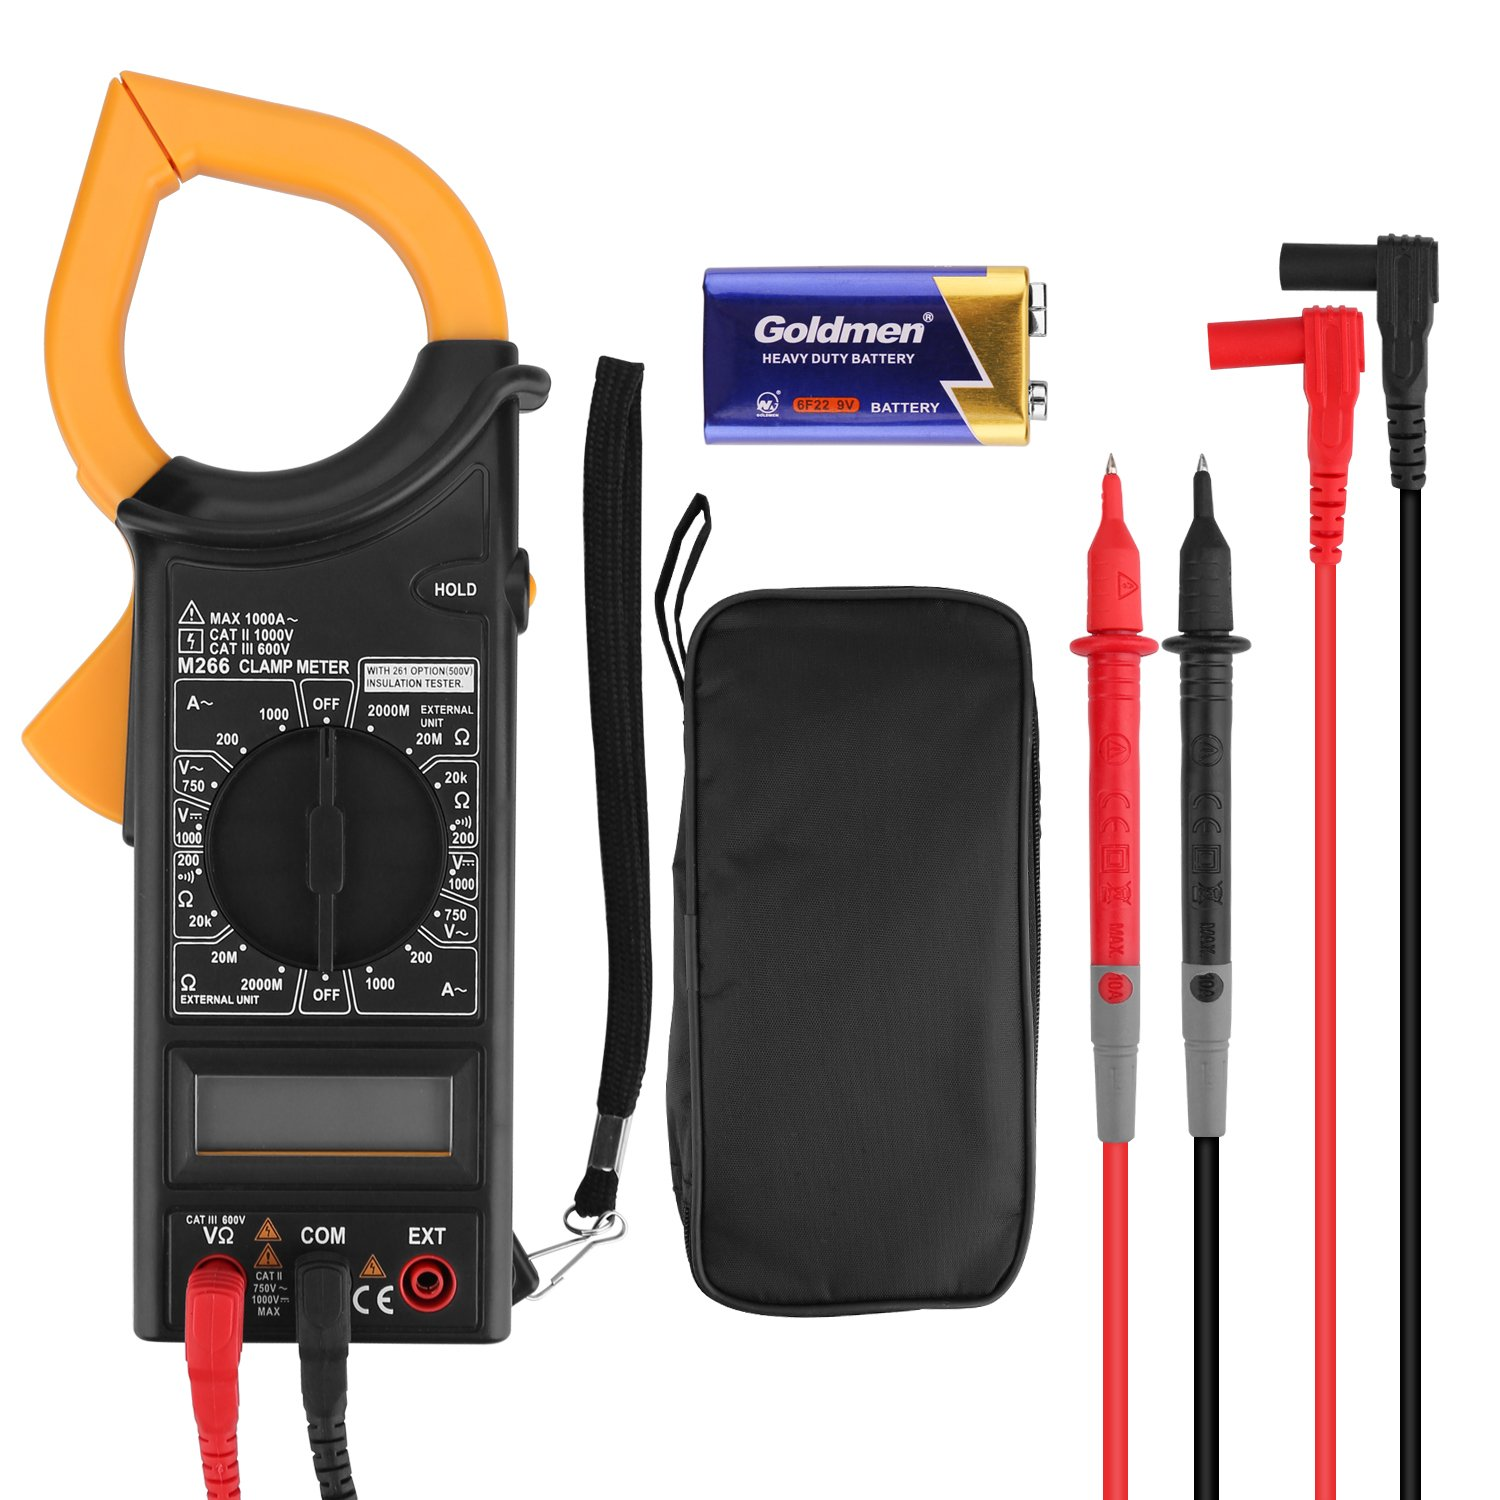 Digital Clamp Meter Multimeters, Auto-Ranging AC/DC voltmeter with Voltage, AC Current, Amp, Volt, Ohm, Diode and Resistance Test,overload protection Tester Meter,Powerjc